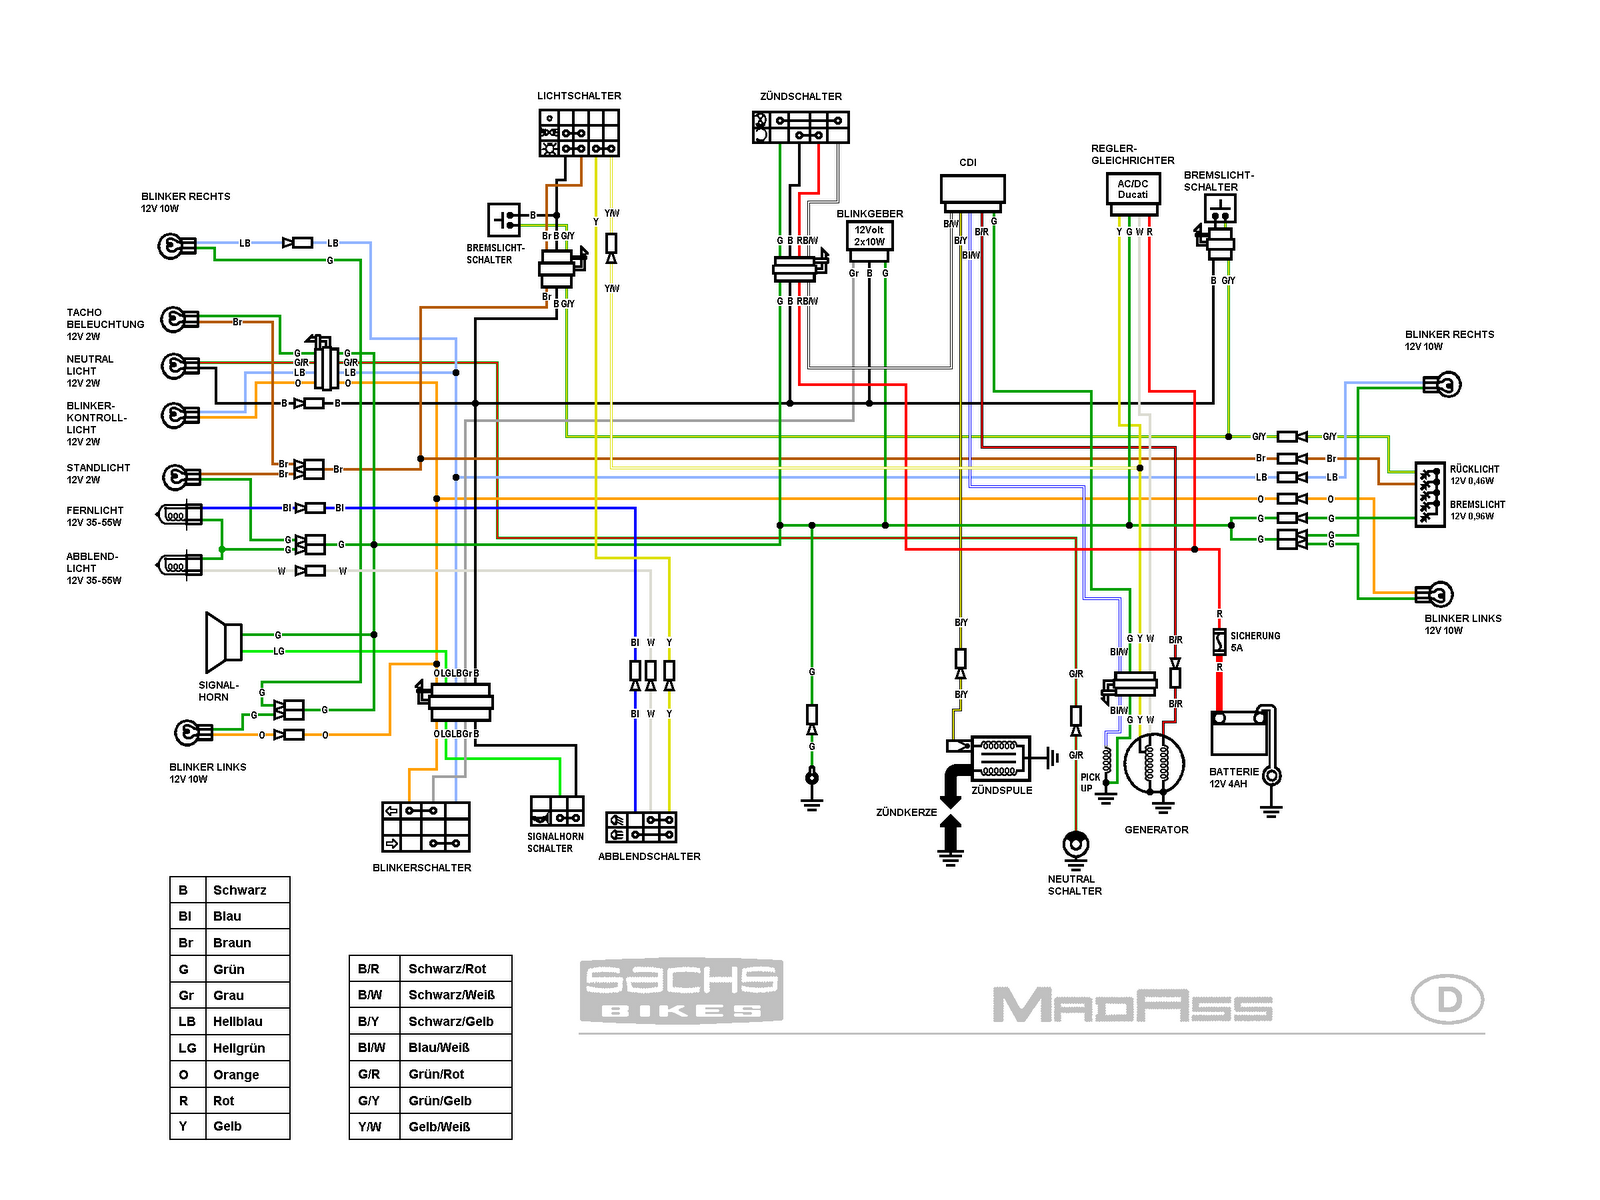 sachs madass with wiring diagram techy at day blogger at noon rh mastercircuits blogspot com